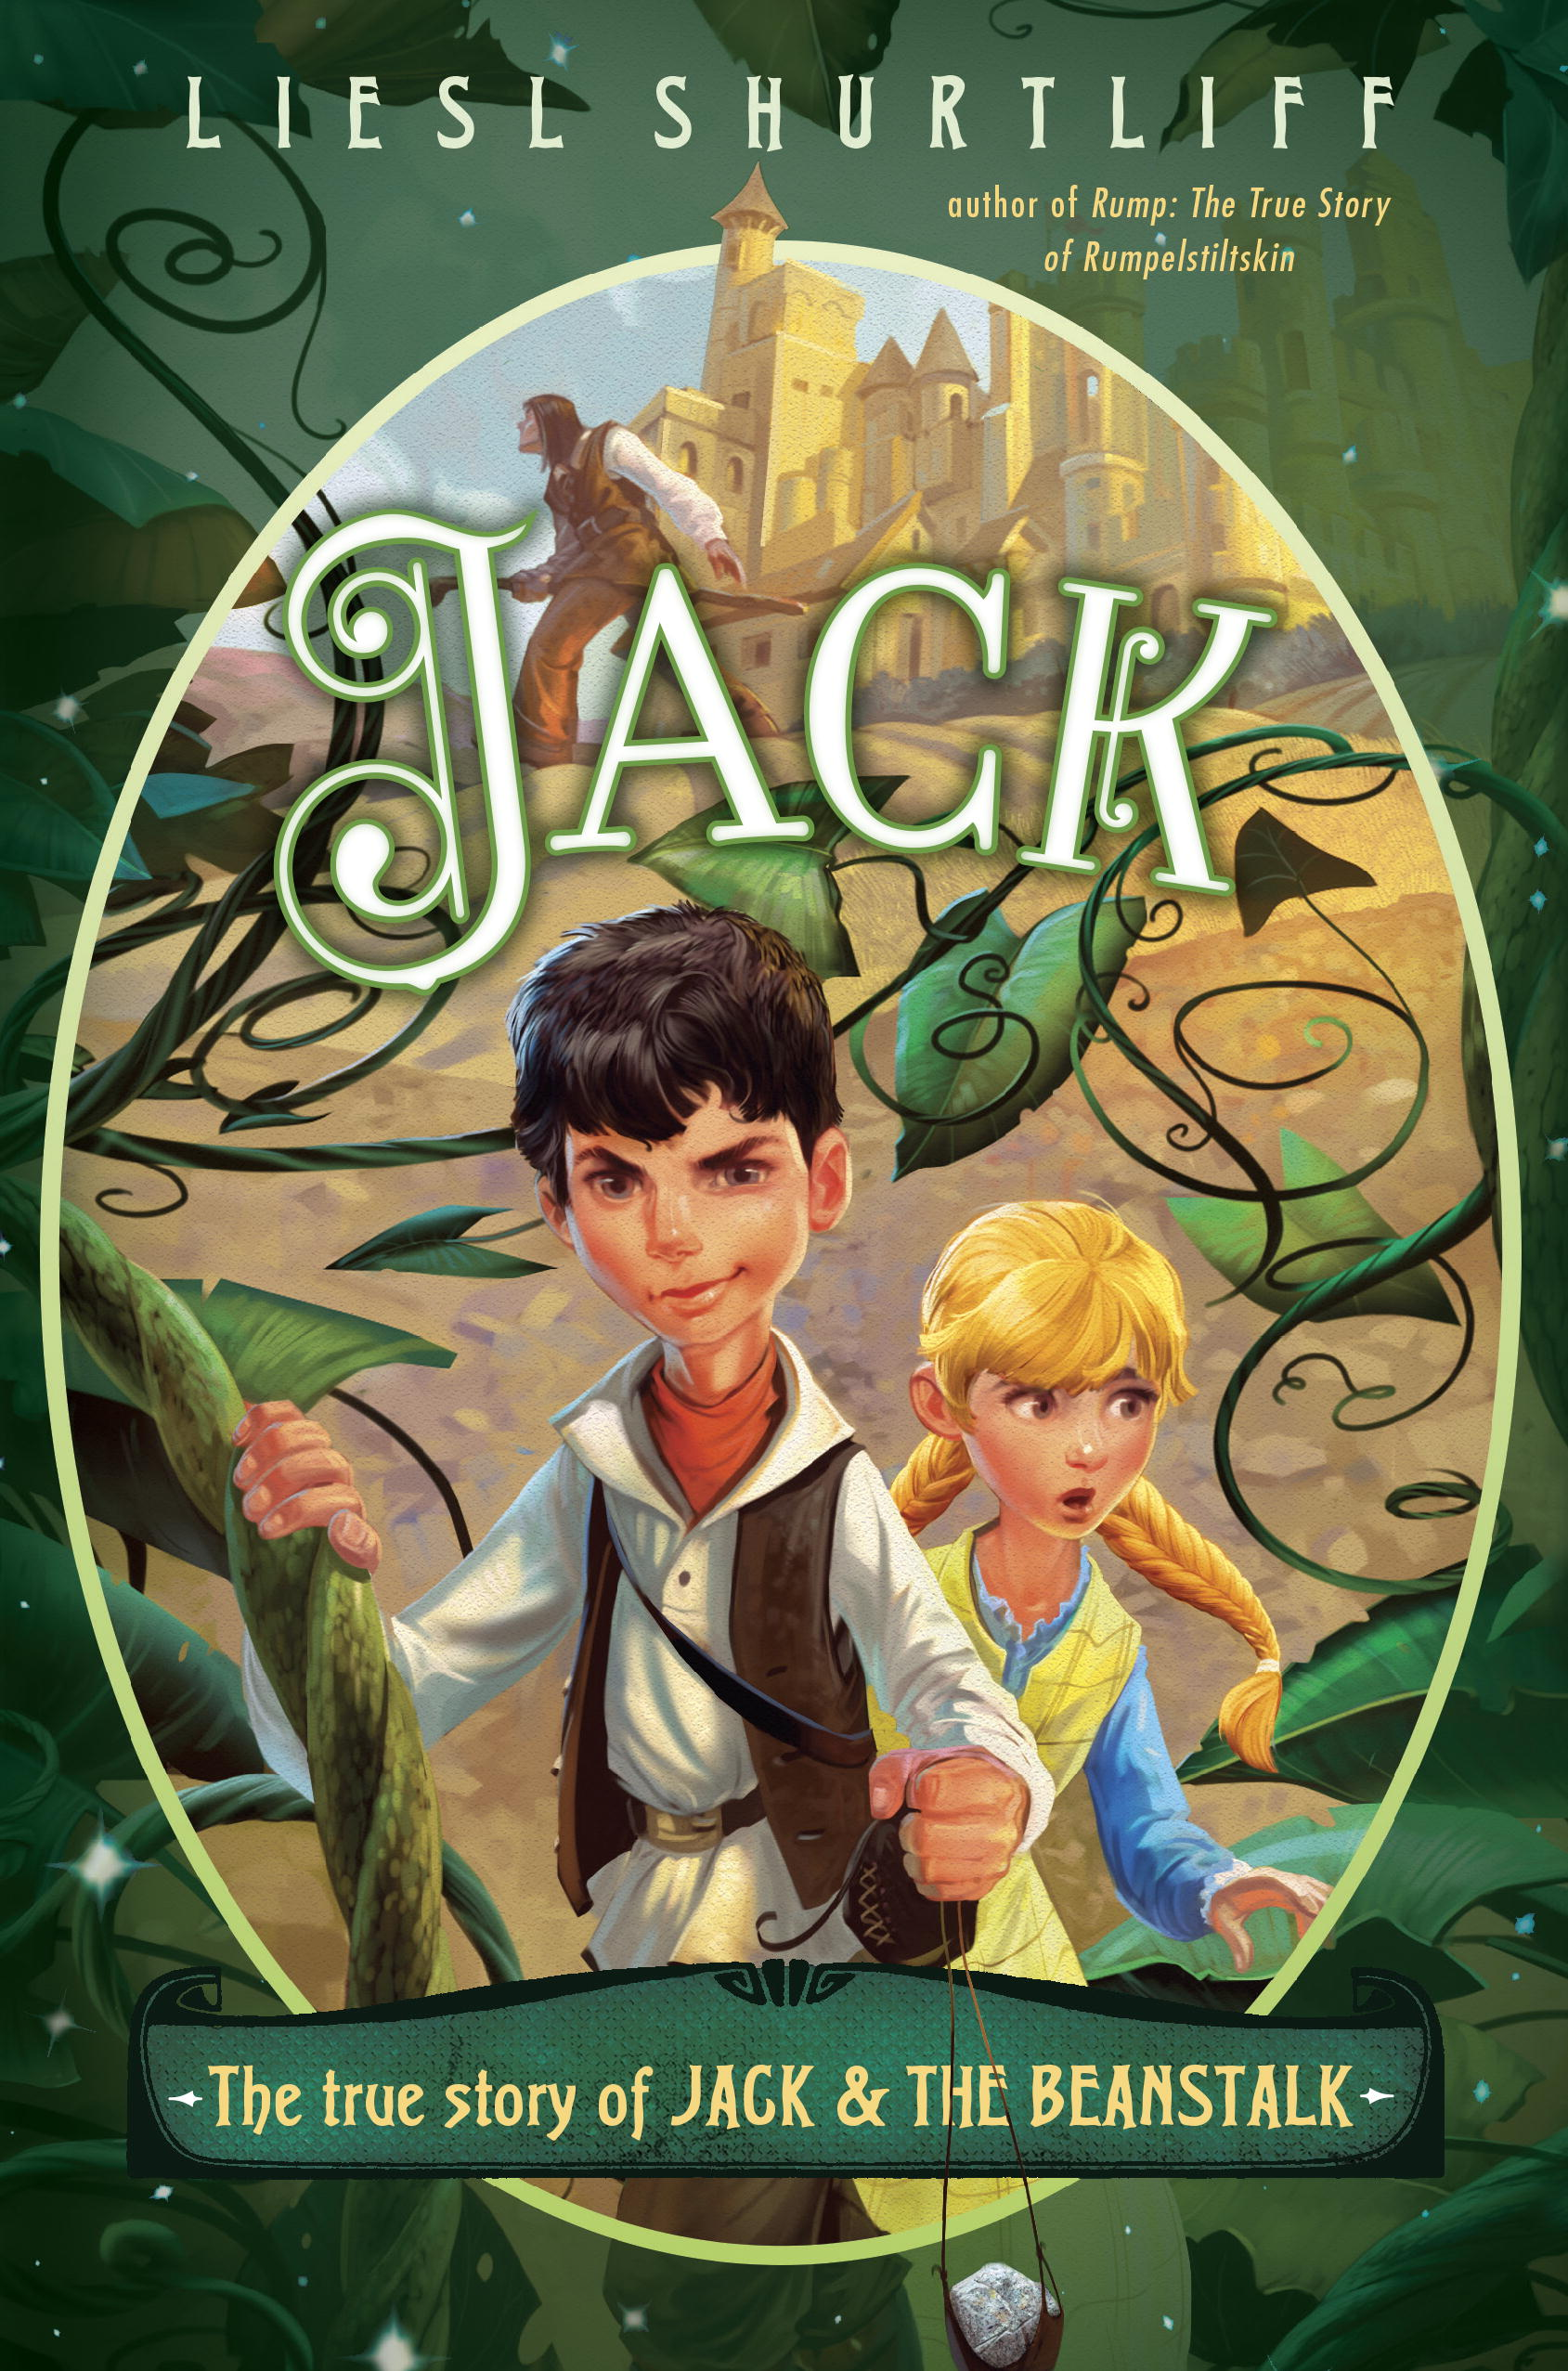 Jack The True Story Of Jack And The Beanstalk By Liesl Shurtliff